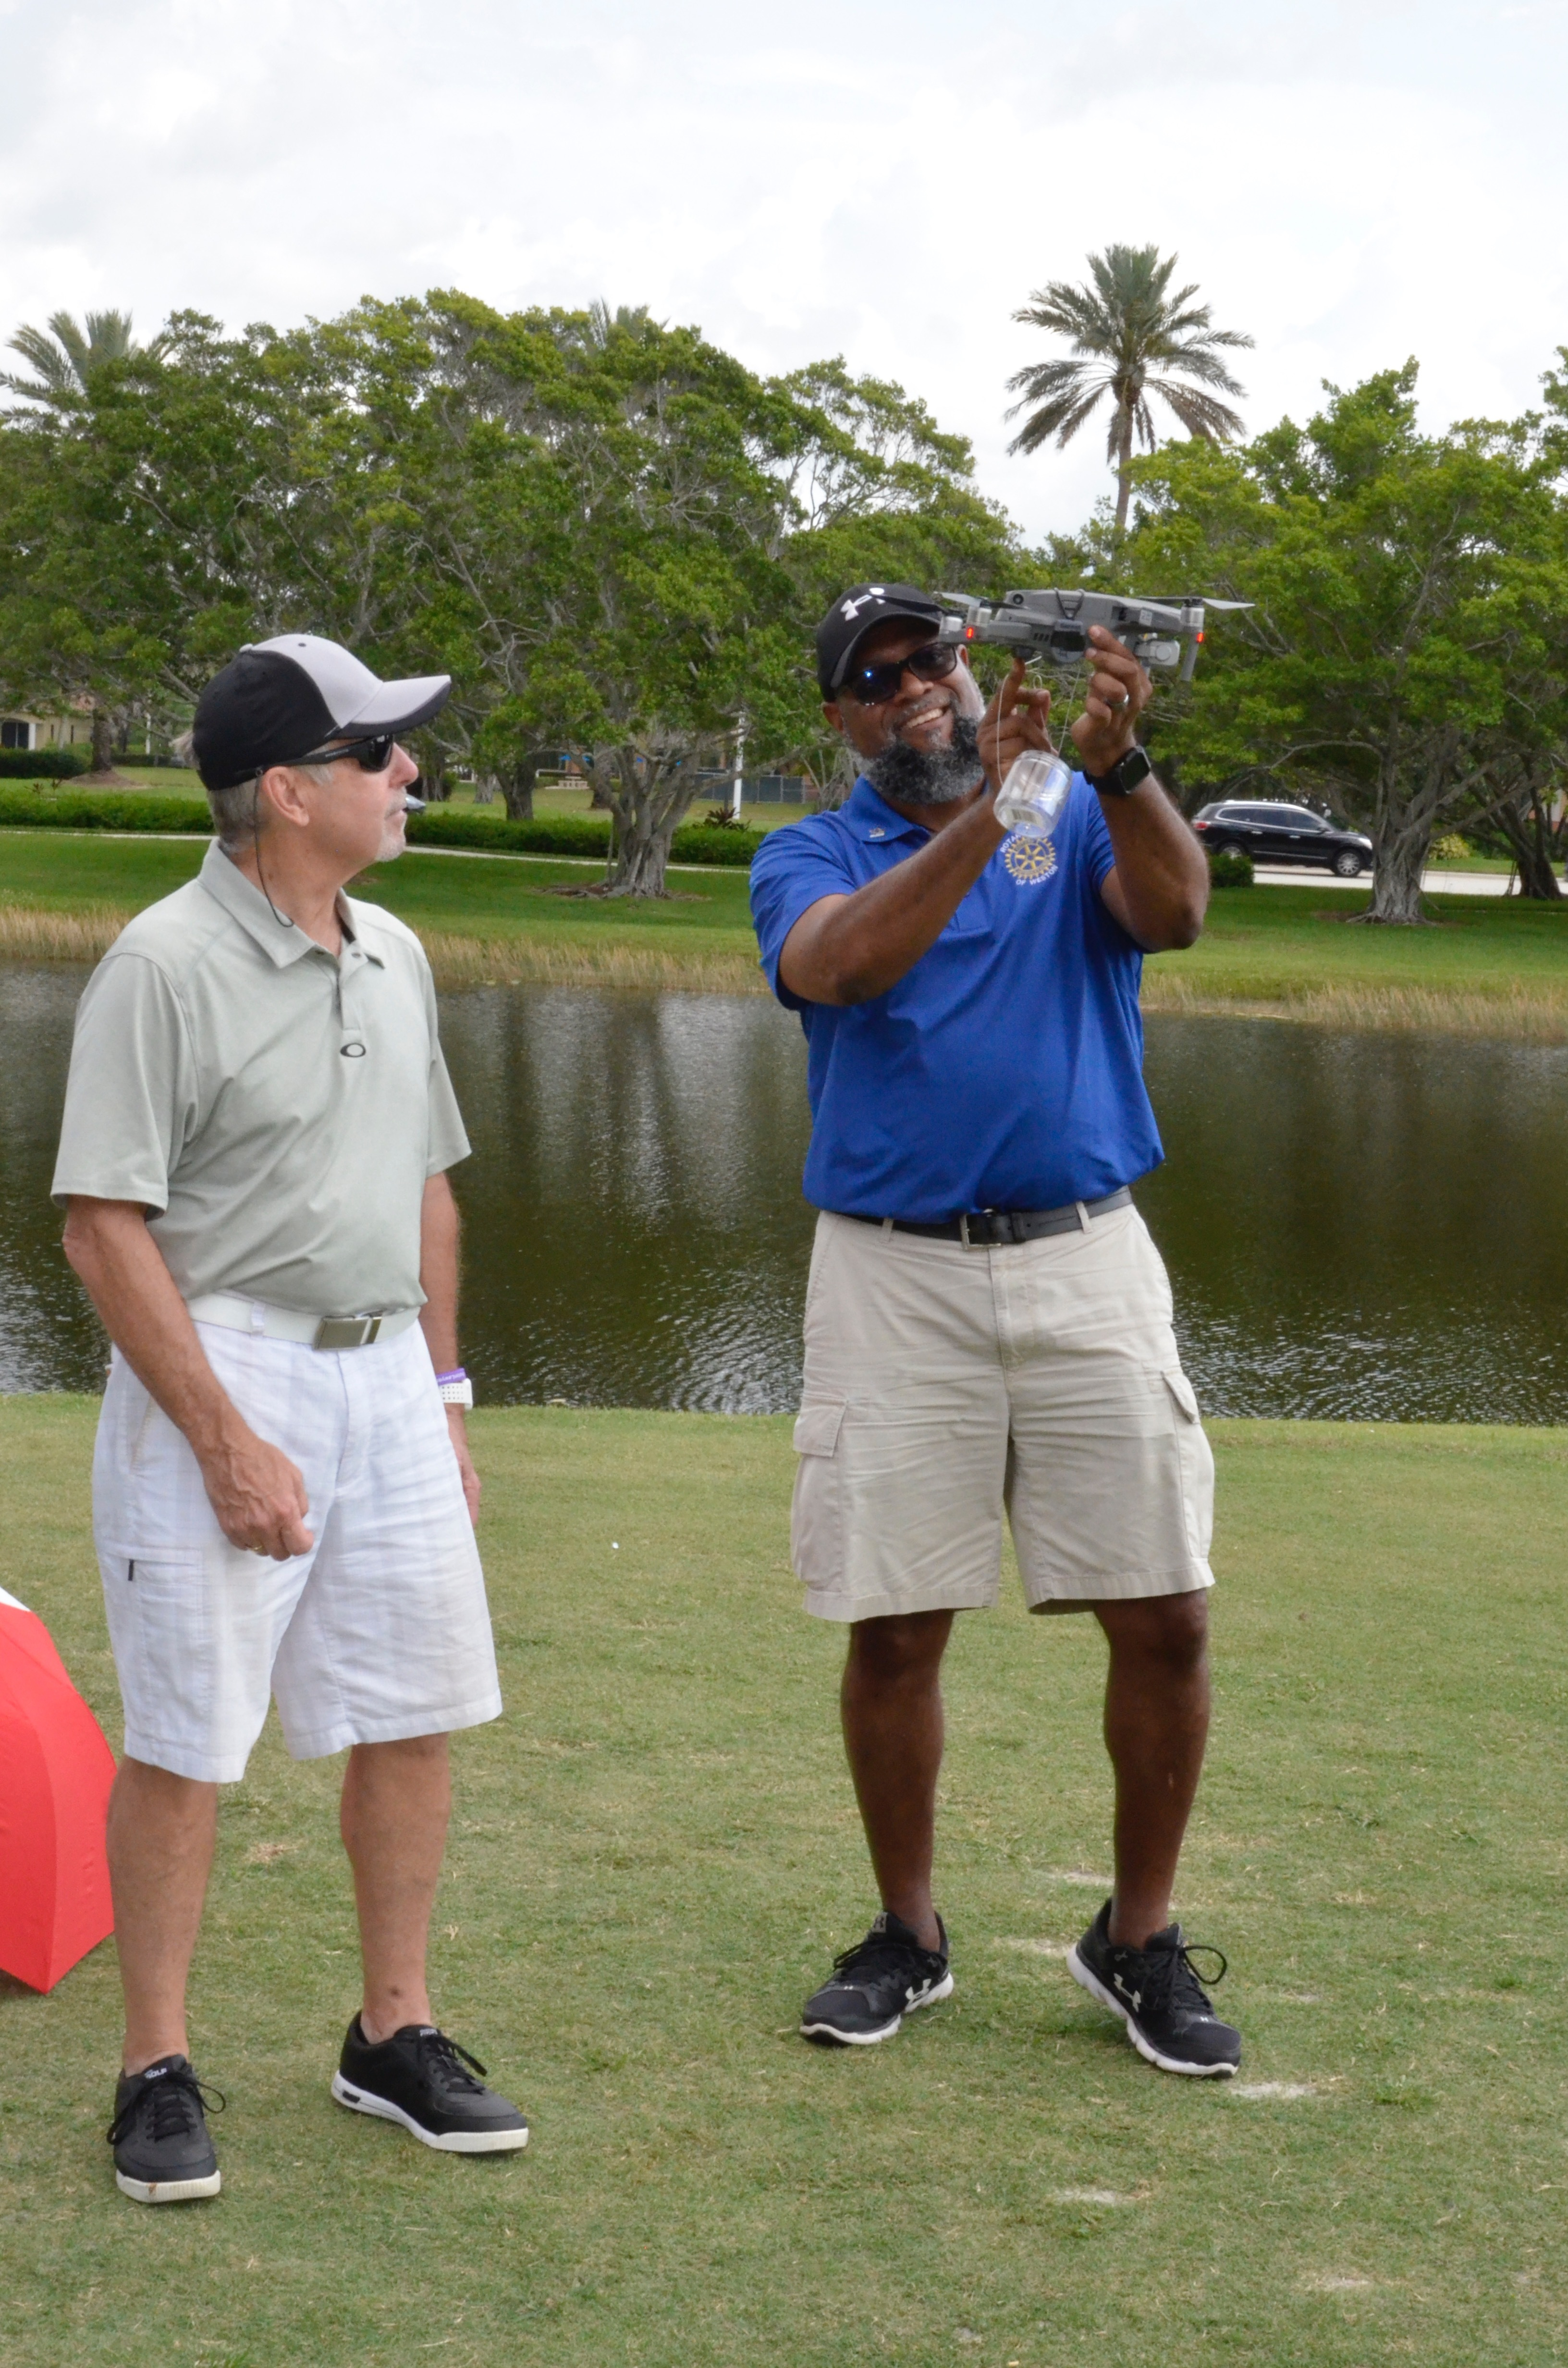 33rd Annual Rotary Golf Classic Sponsored by FHVLEGAL.COM gallery image #44